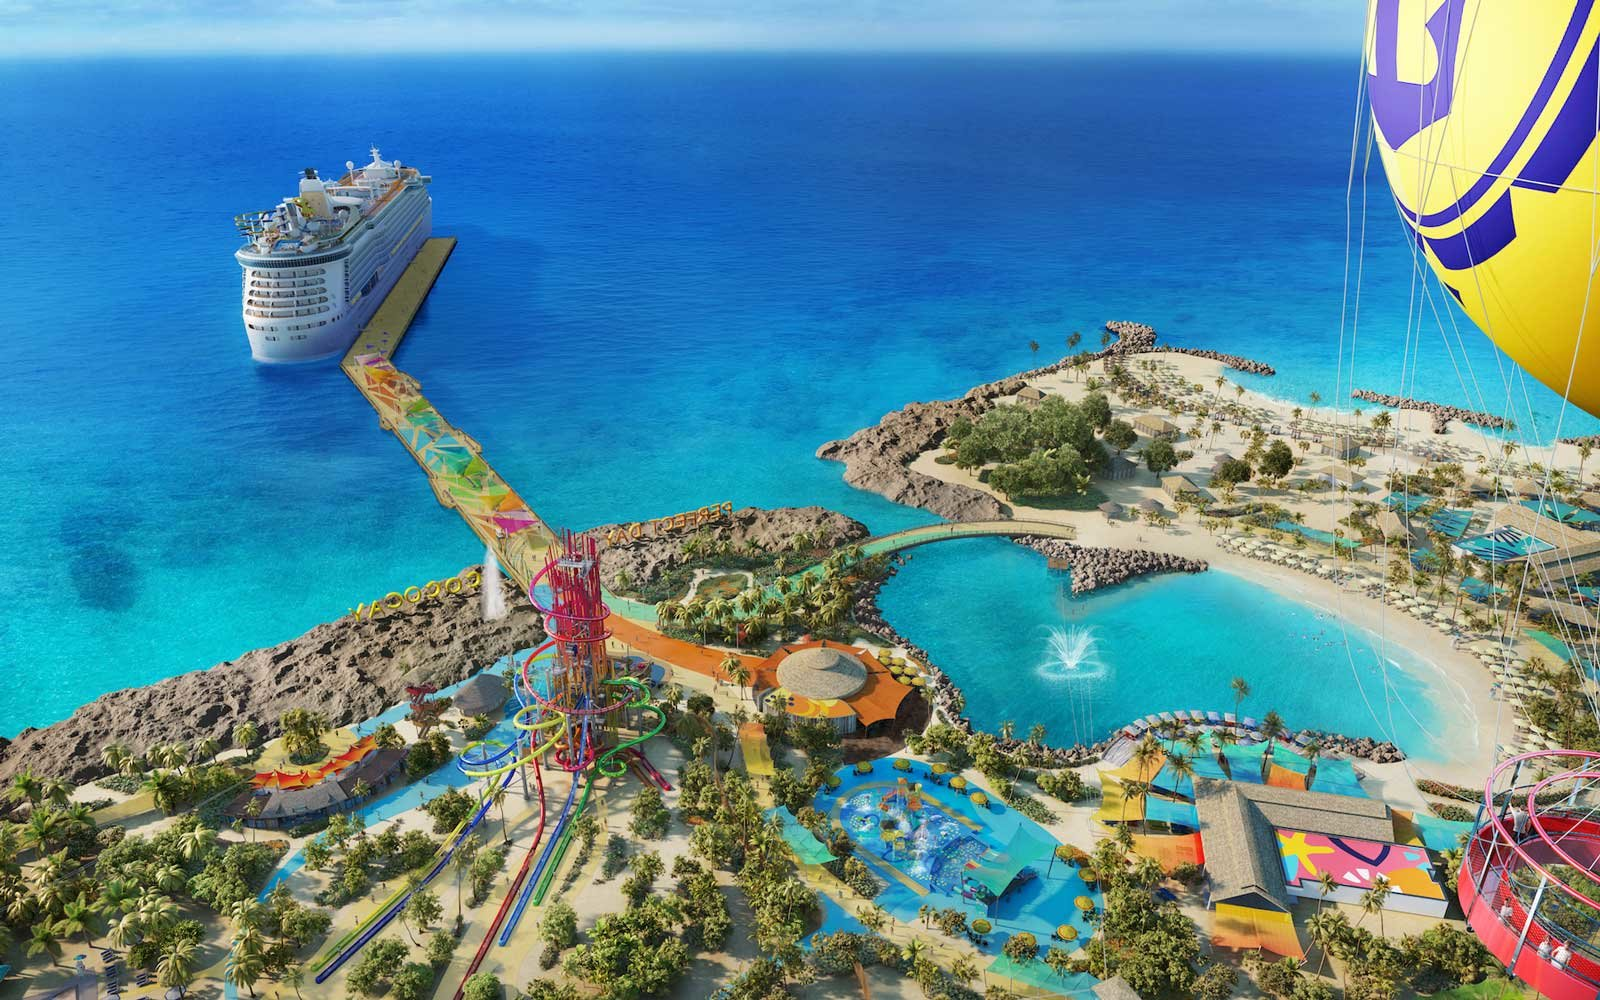 Here S What To Expect On A Royal Caribbean Cruise To